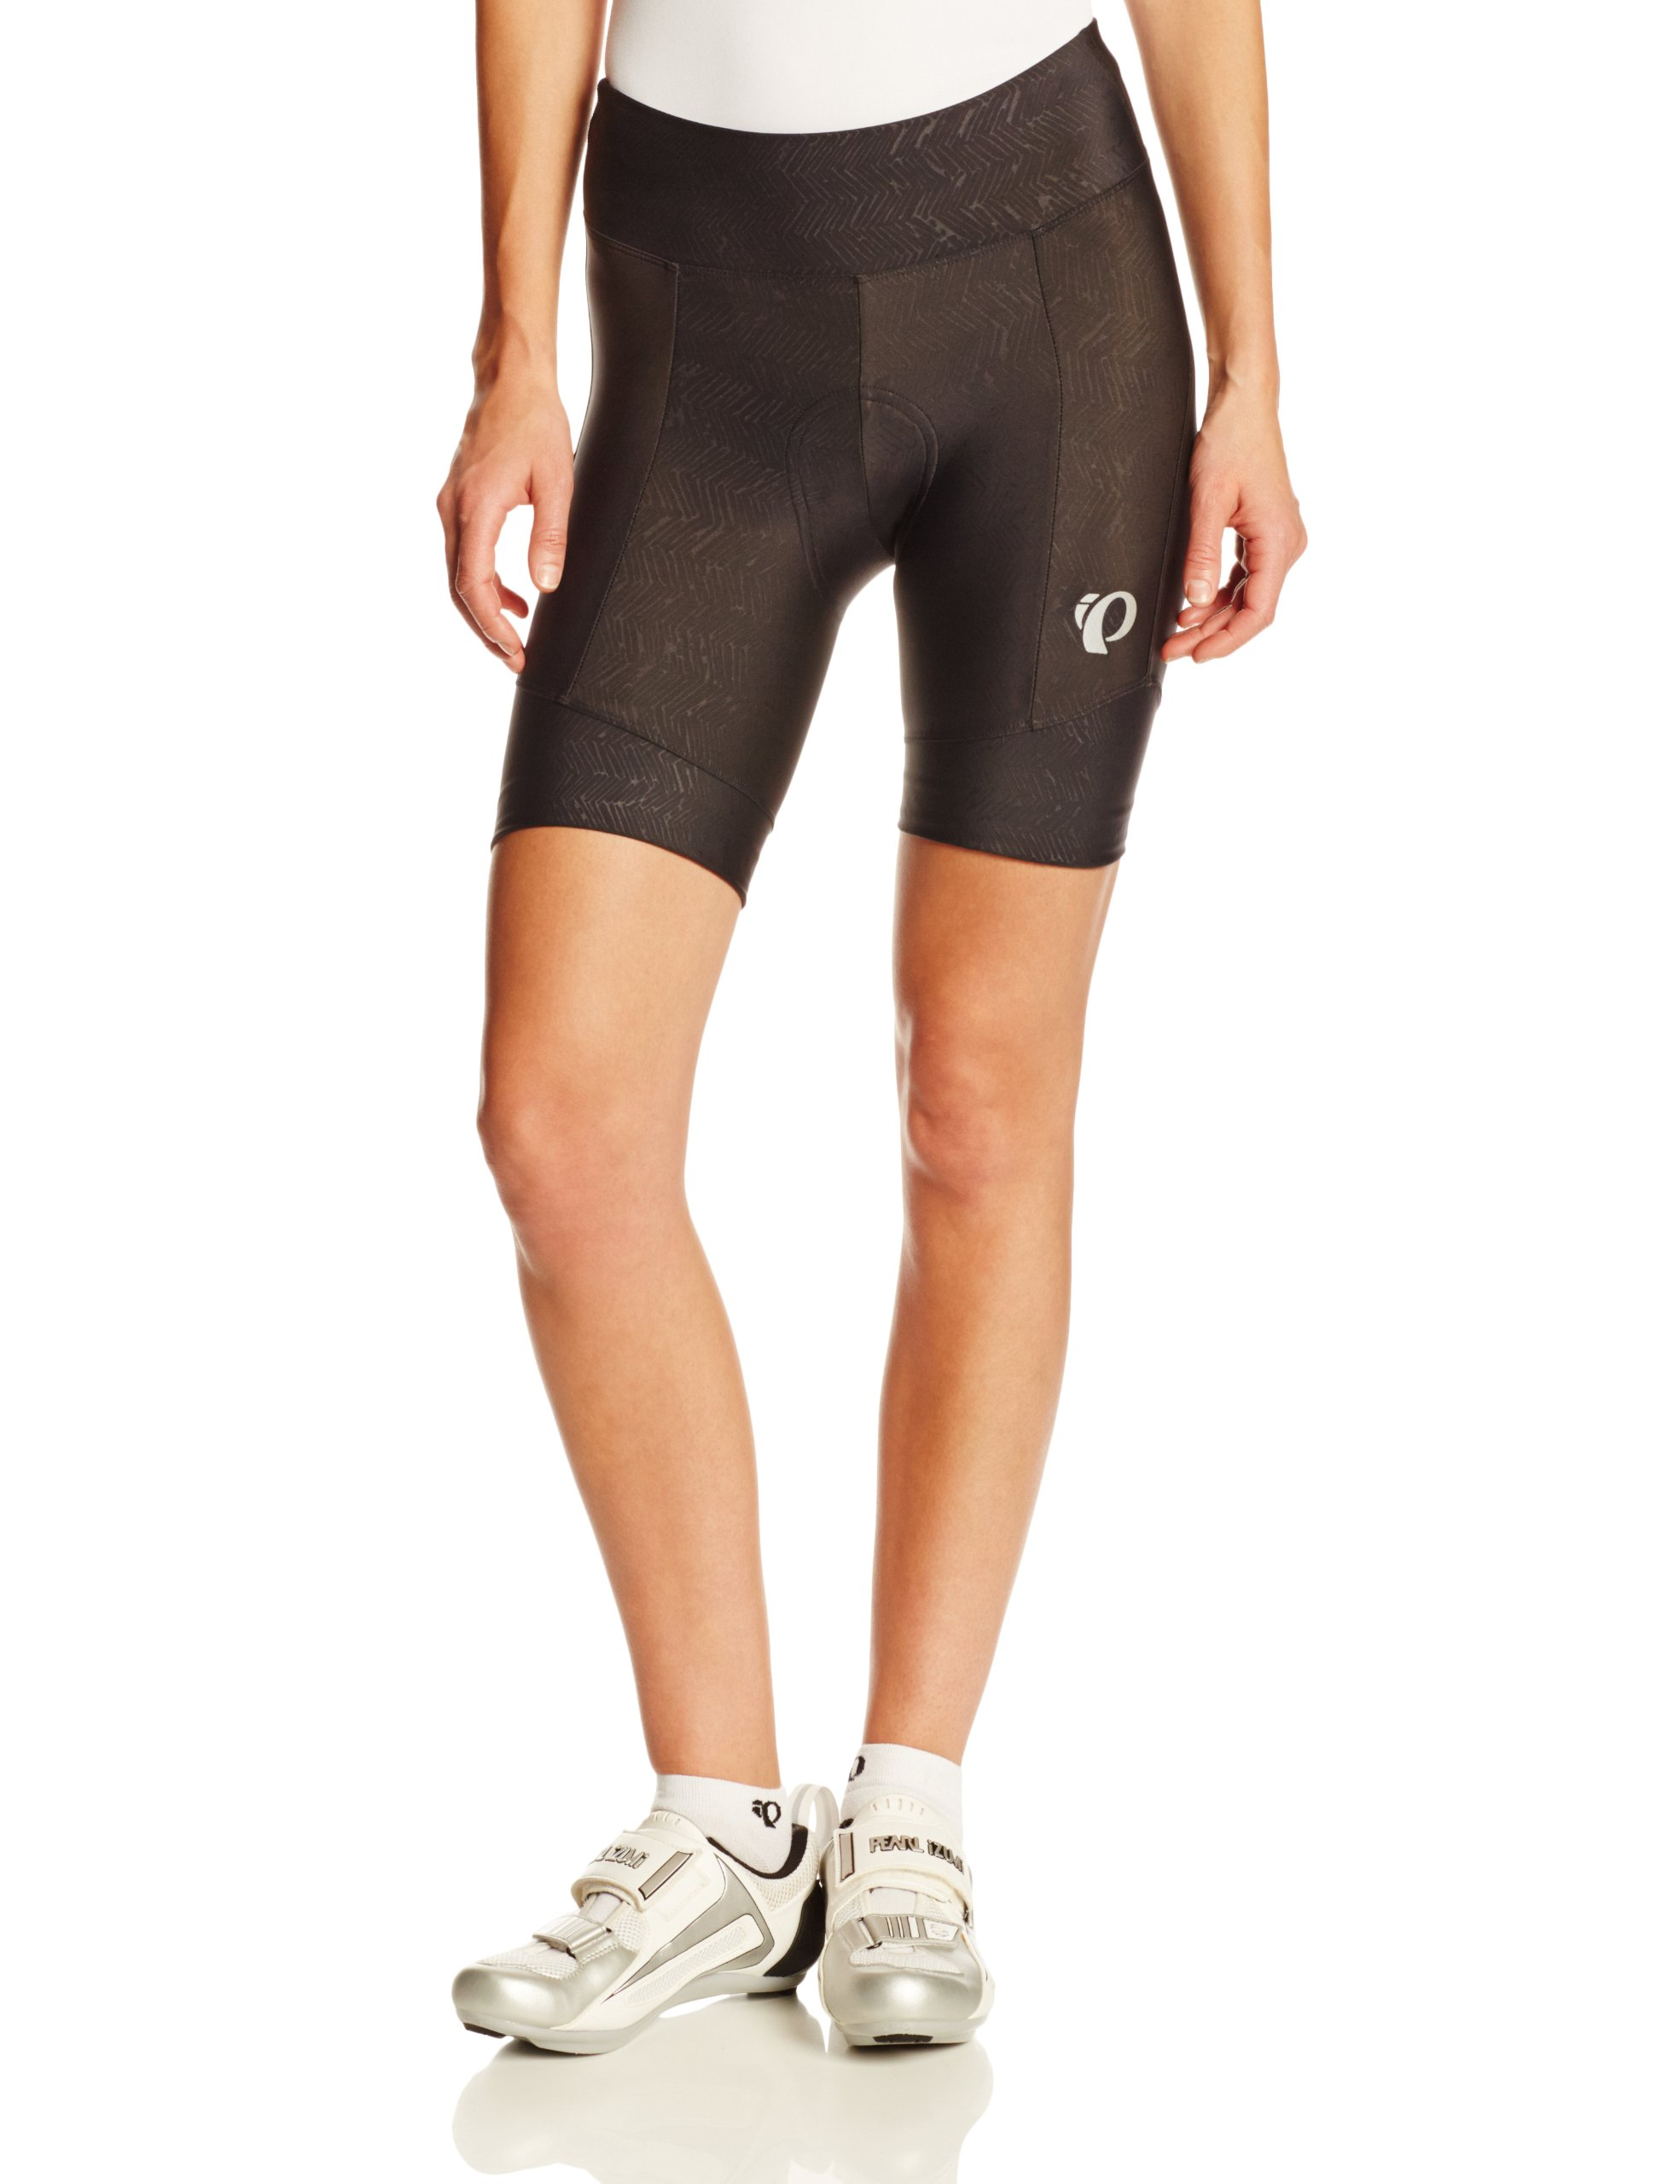 Pearl Izumi Women's W Attack Shorts, Black Texture, Large by Pearl iZUMi (Image #1)